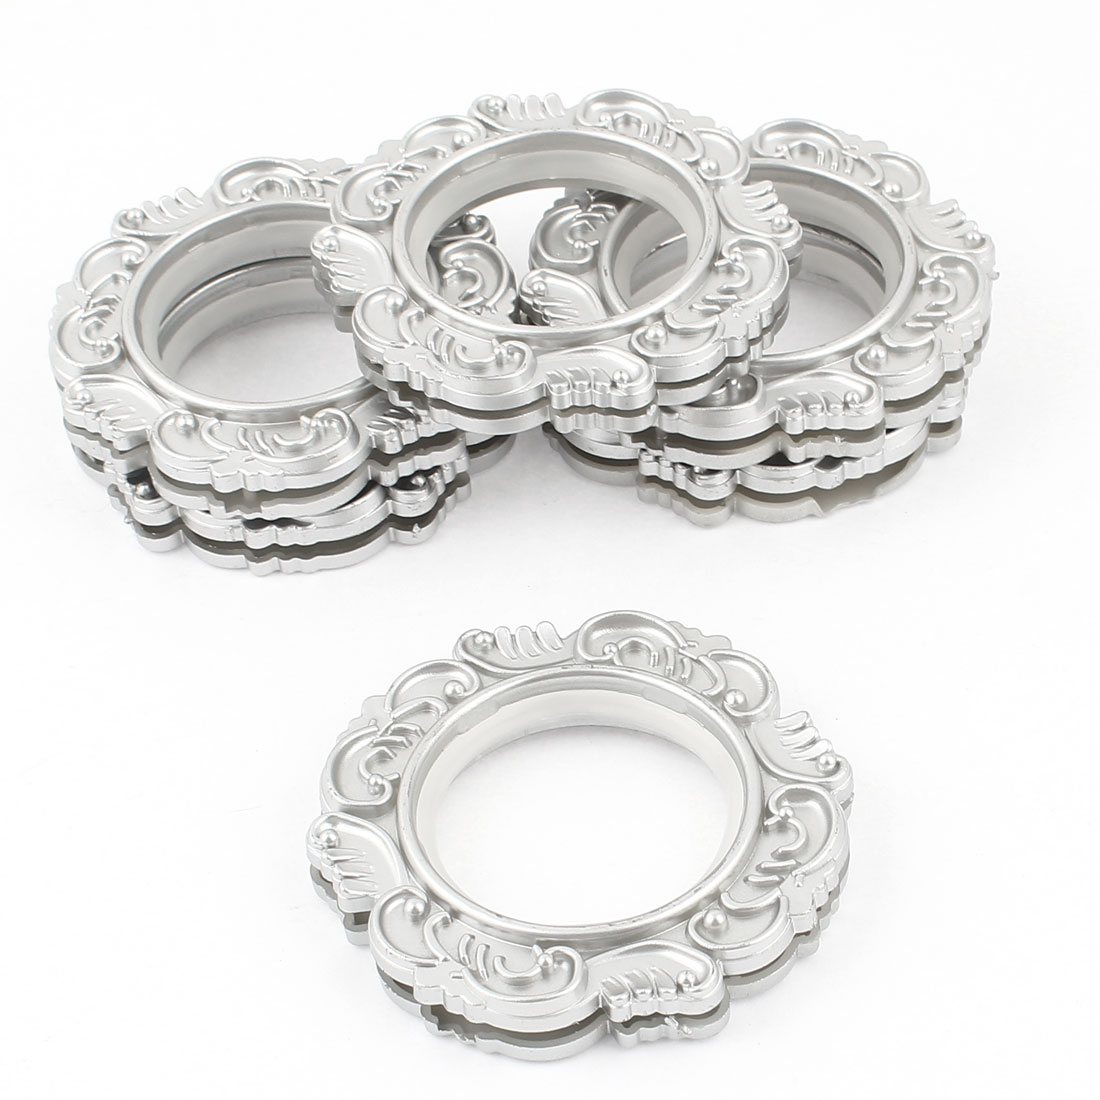 6 Pcs Flower Print 45mm Inner Diameter Round Silver Tone Window Curtain Rings